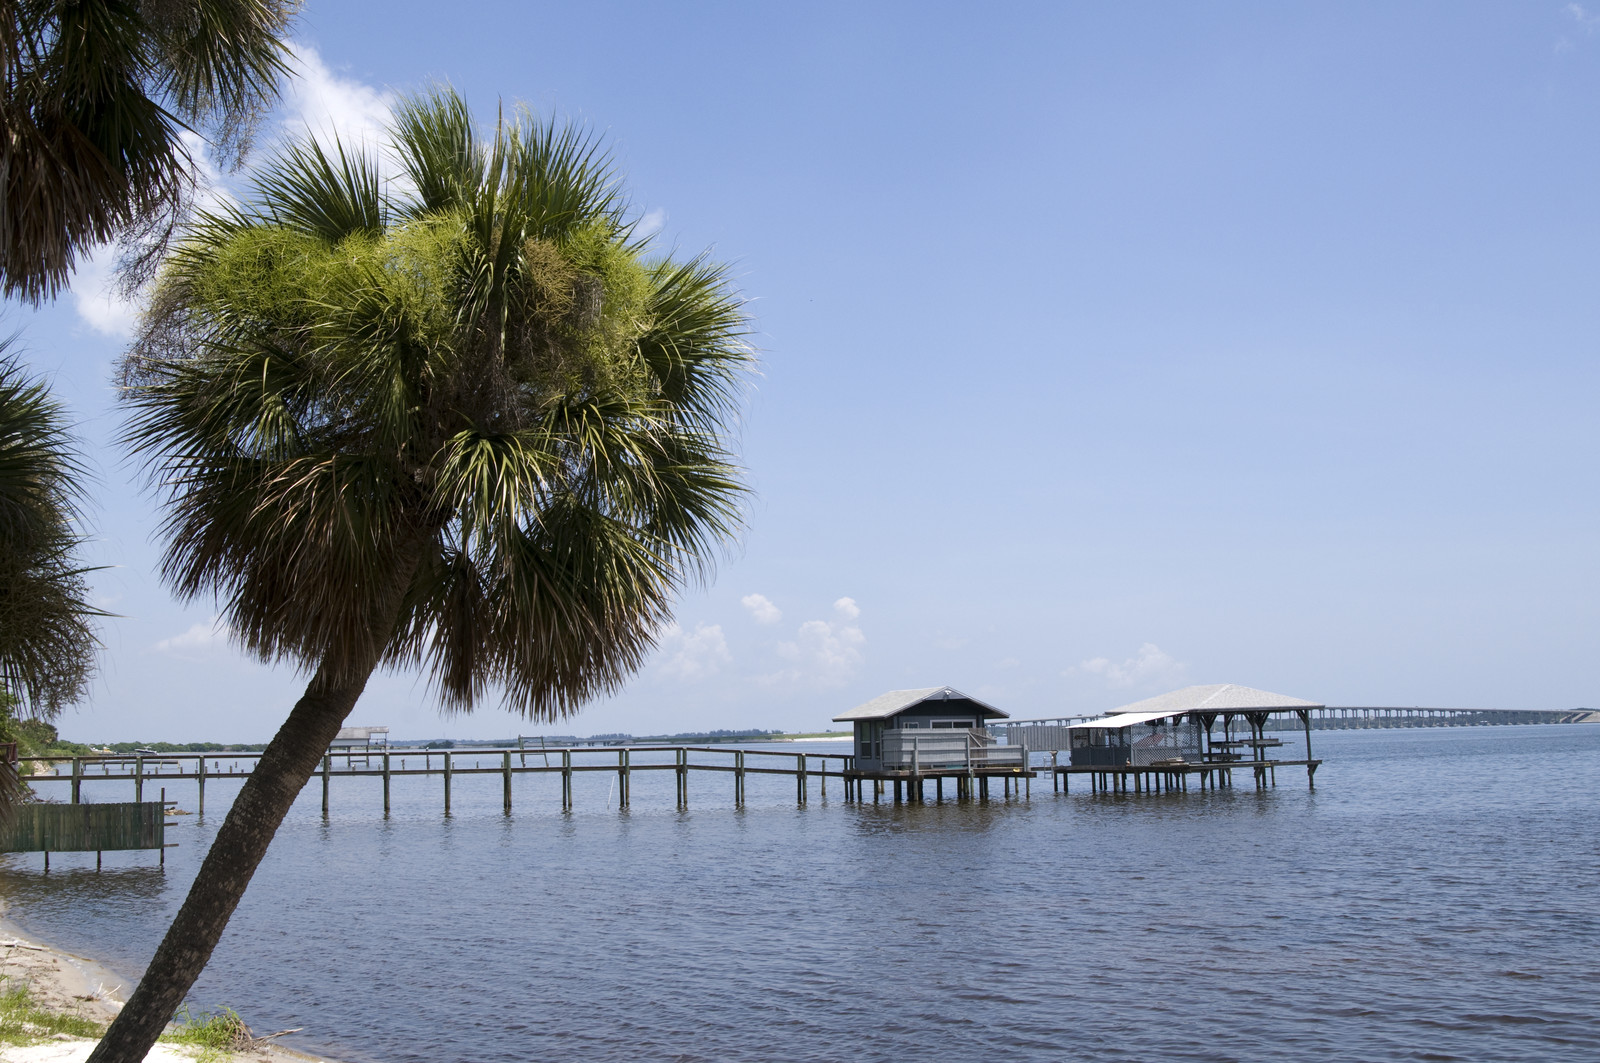 Lagoon area of Melbourne, FL with a small pier and palm trees hanging over the water